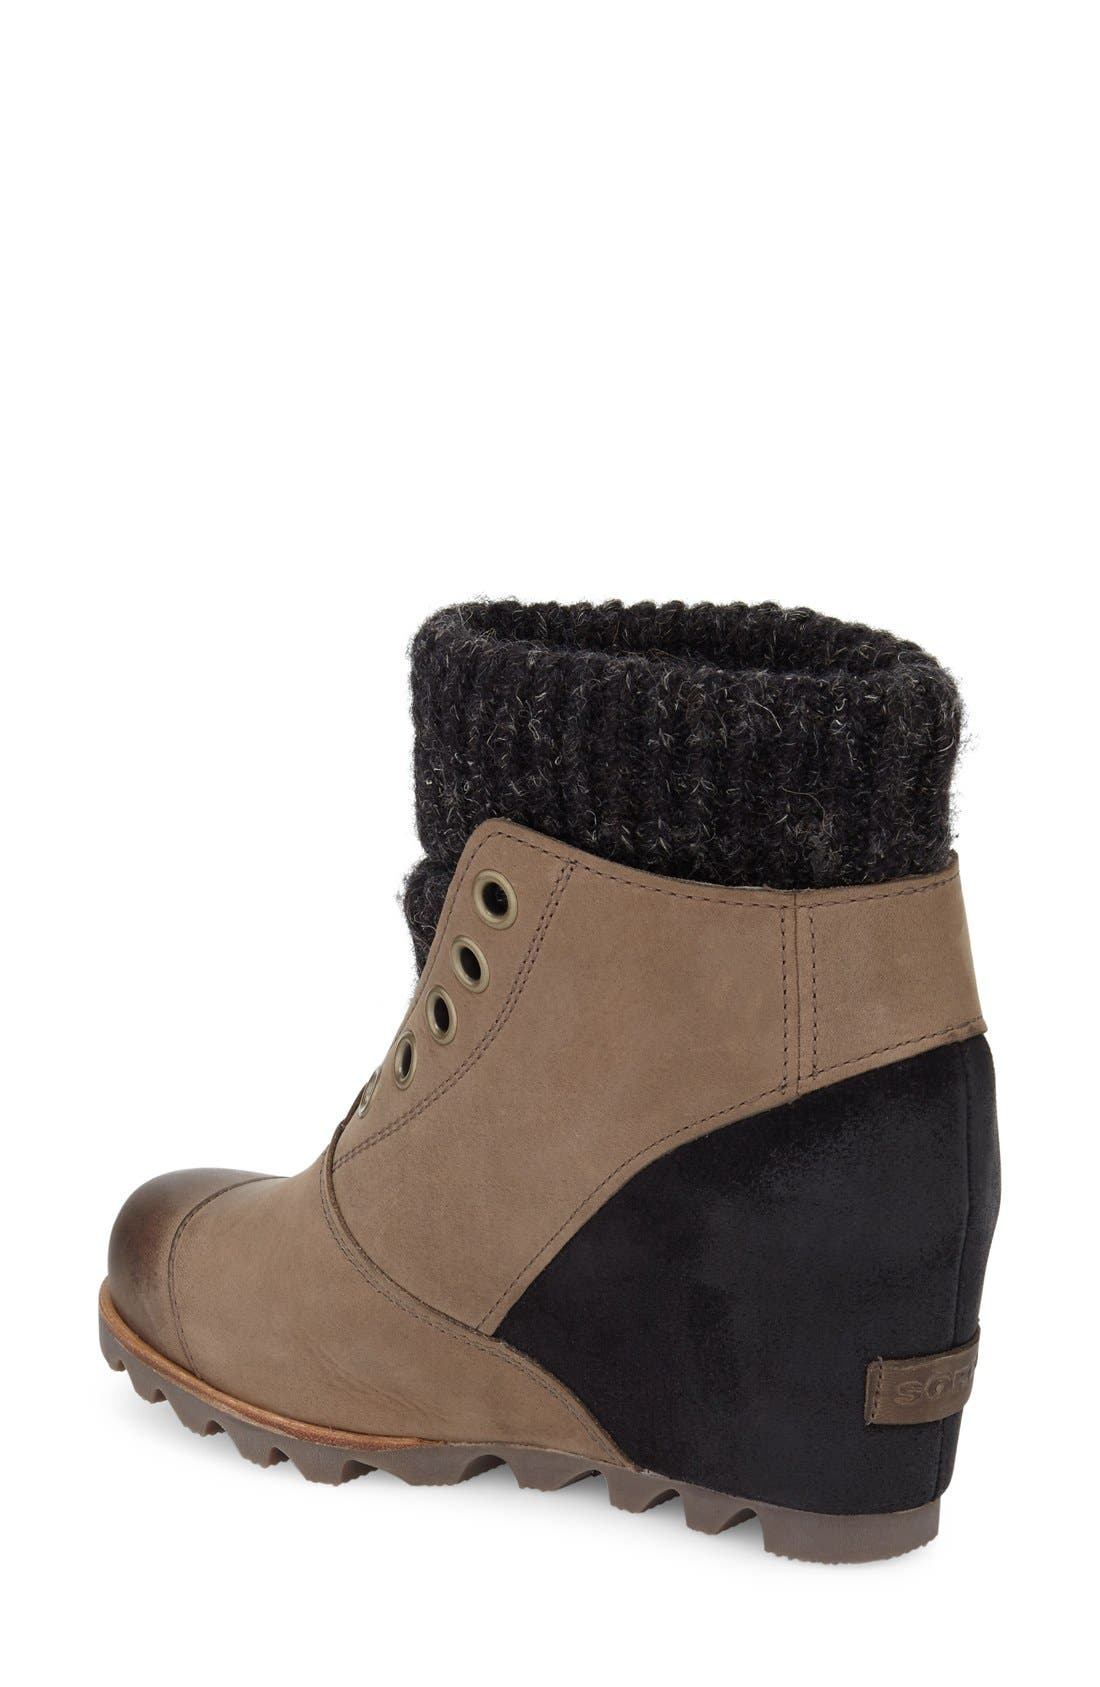 Alternate Image 2  - SOREL Joanie Waterproof Wedge Bootie (Women)